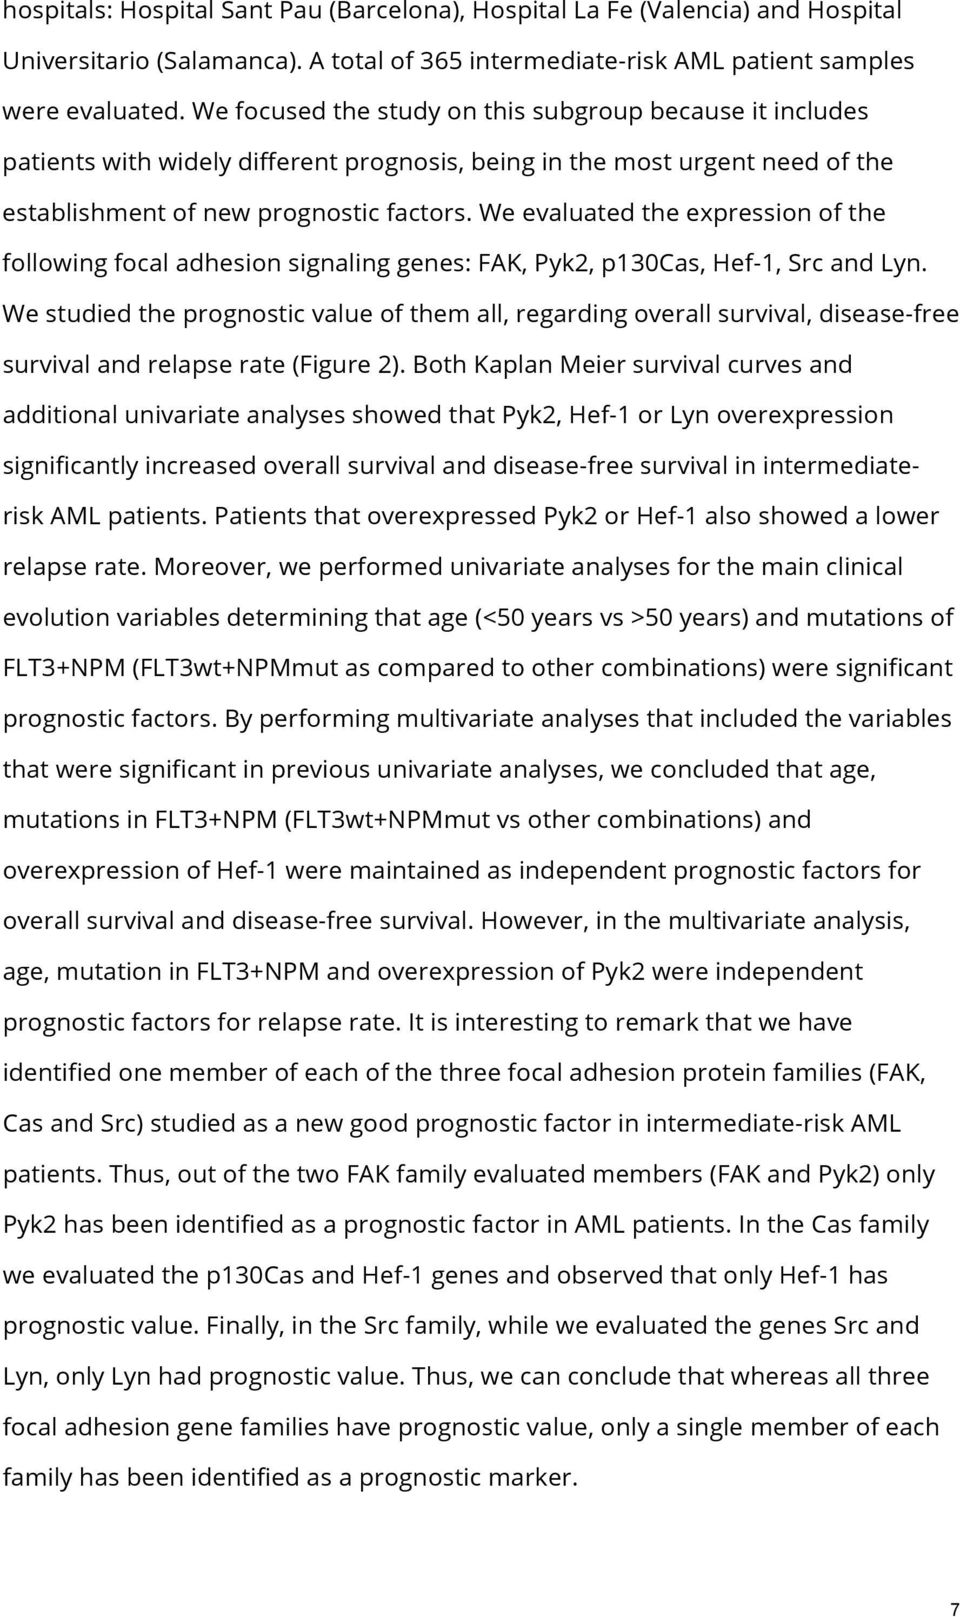 We evaluated the expression of the following focal adhesion signaling genes: FAK, Pyk2, p130cas, Hef-1, Src and Lyn.